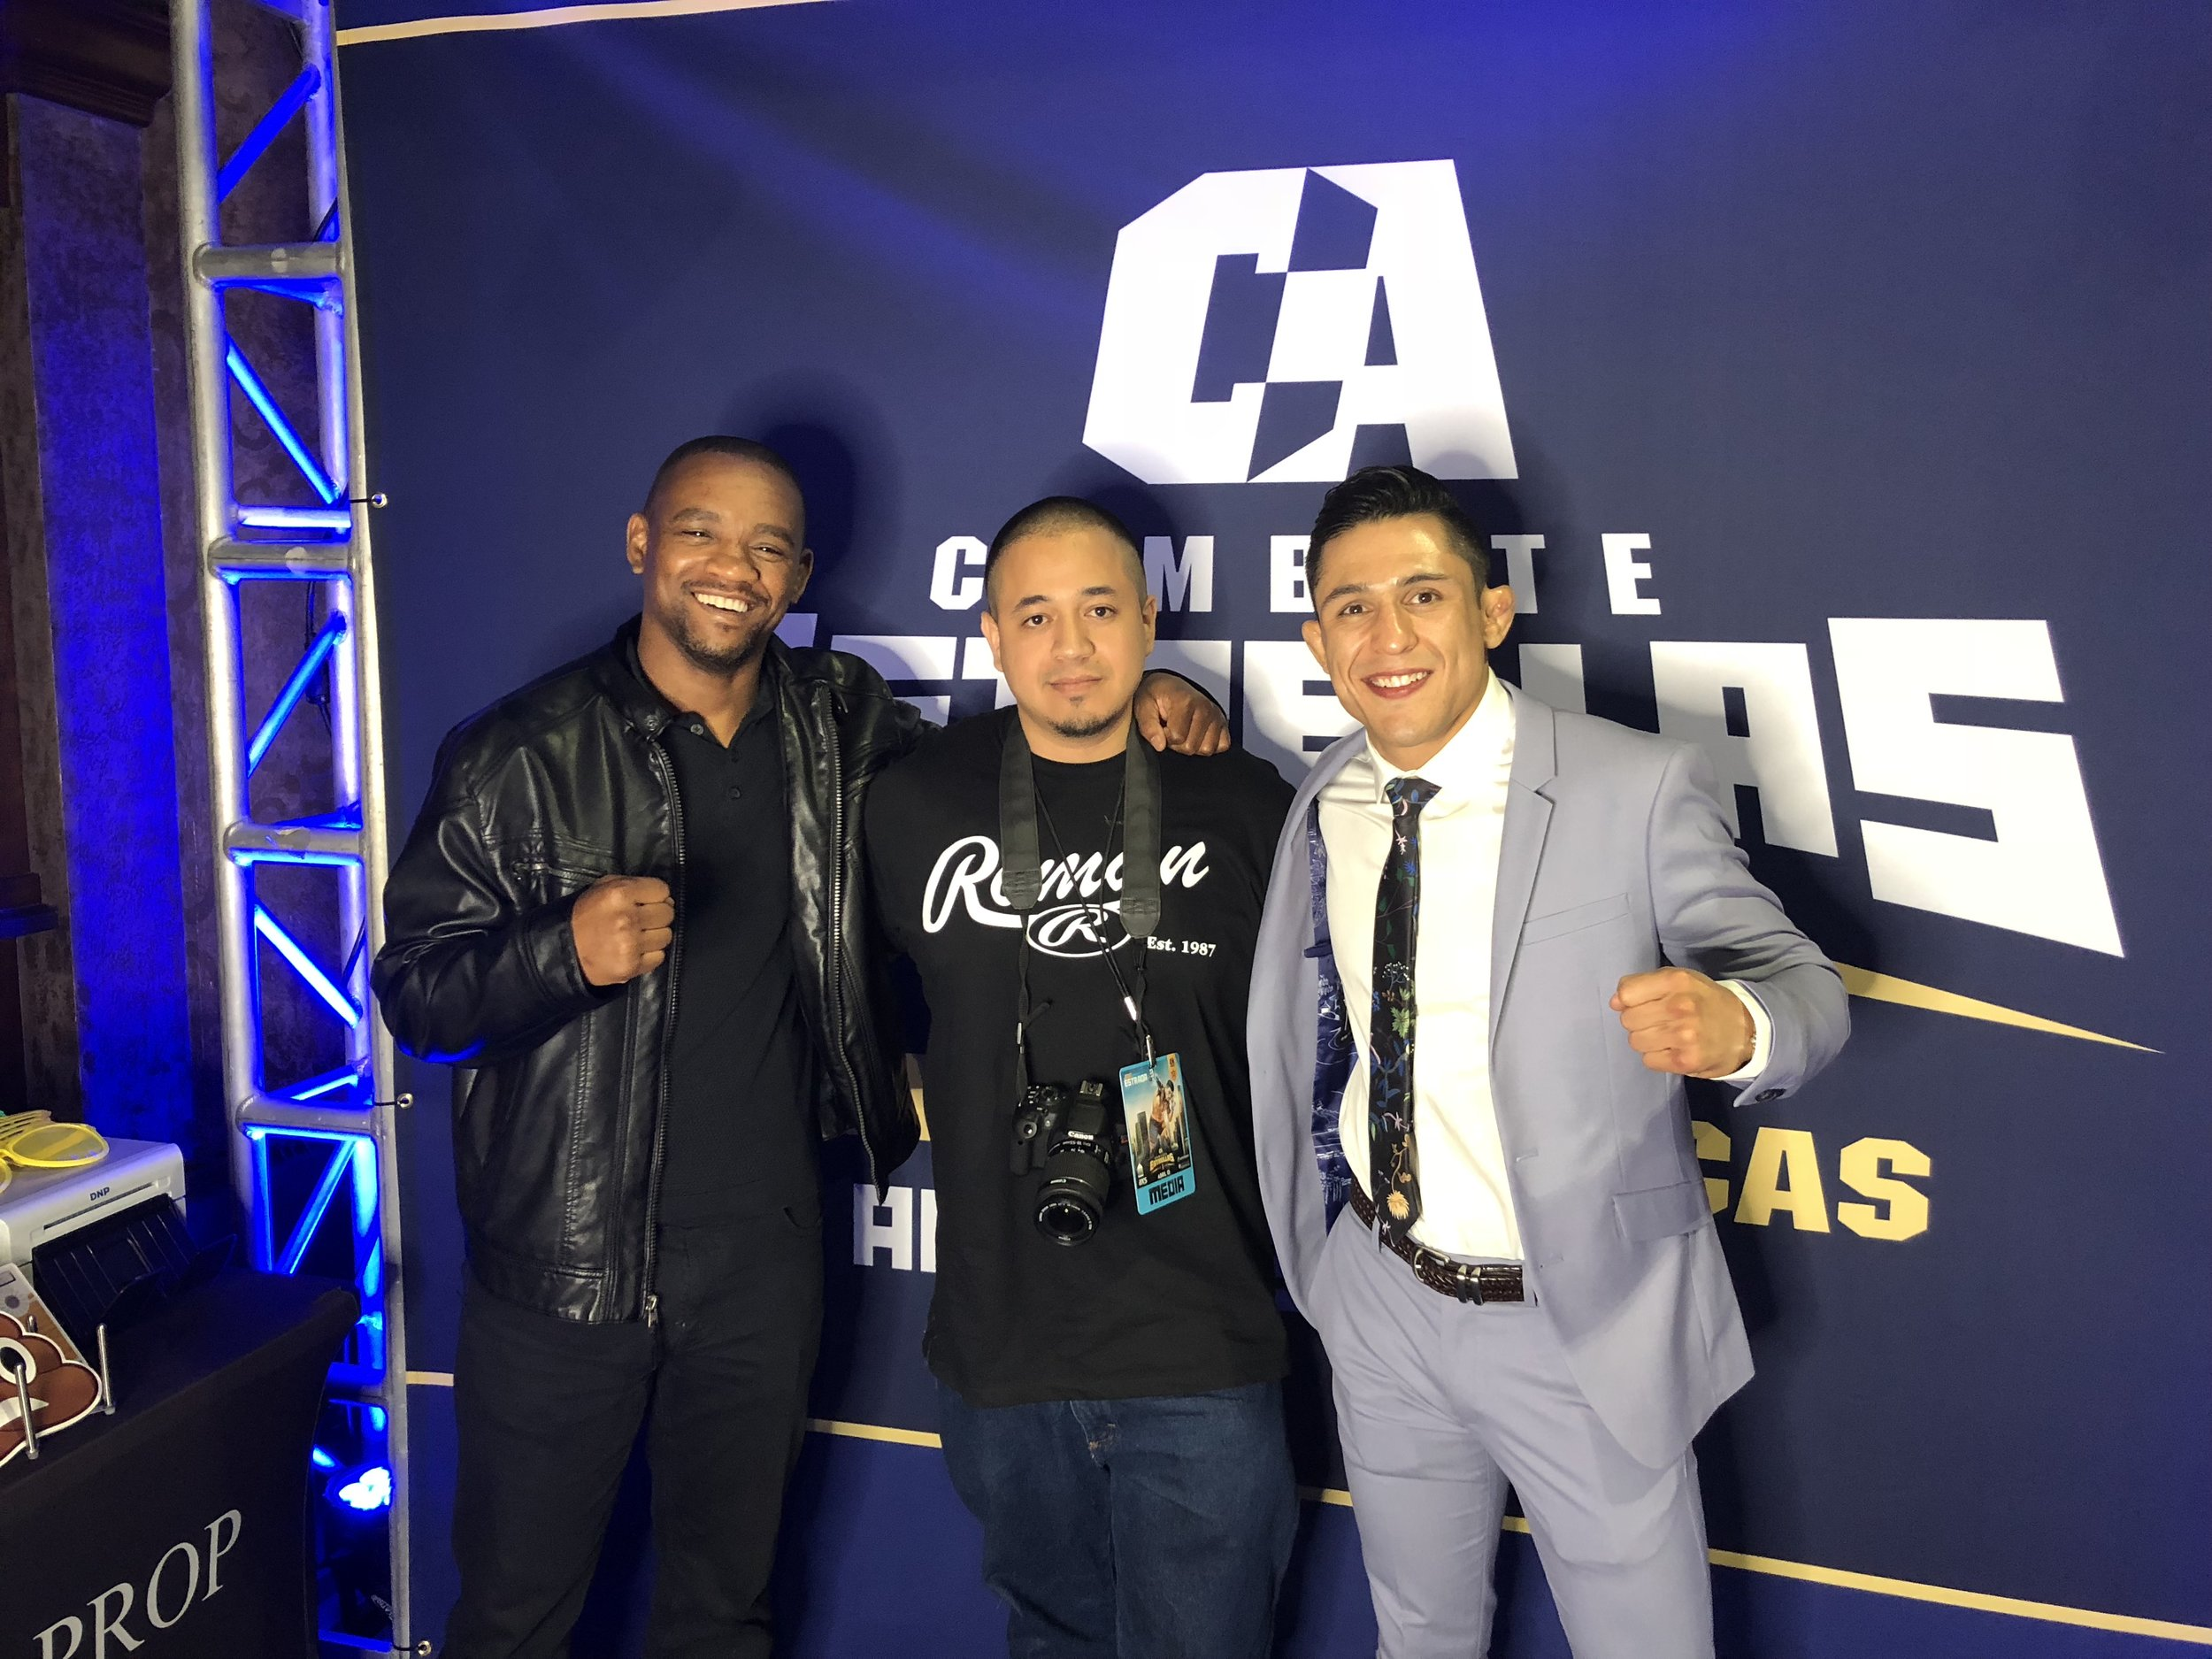 Ray Roman, and MMA Fighters Yves Edwards, Erik Perez at COMBATE ESTRELLAS I 2.JPG